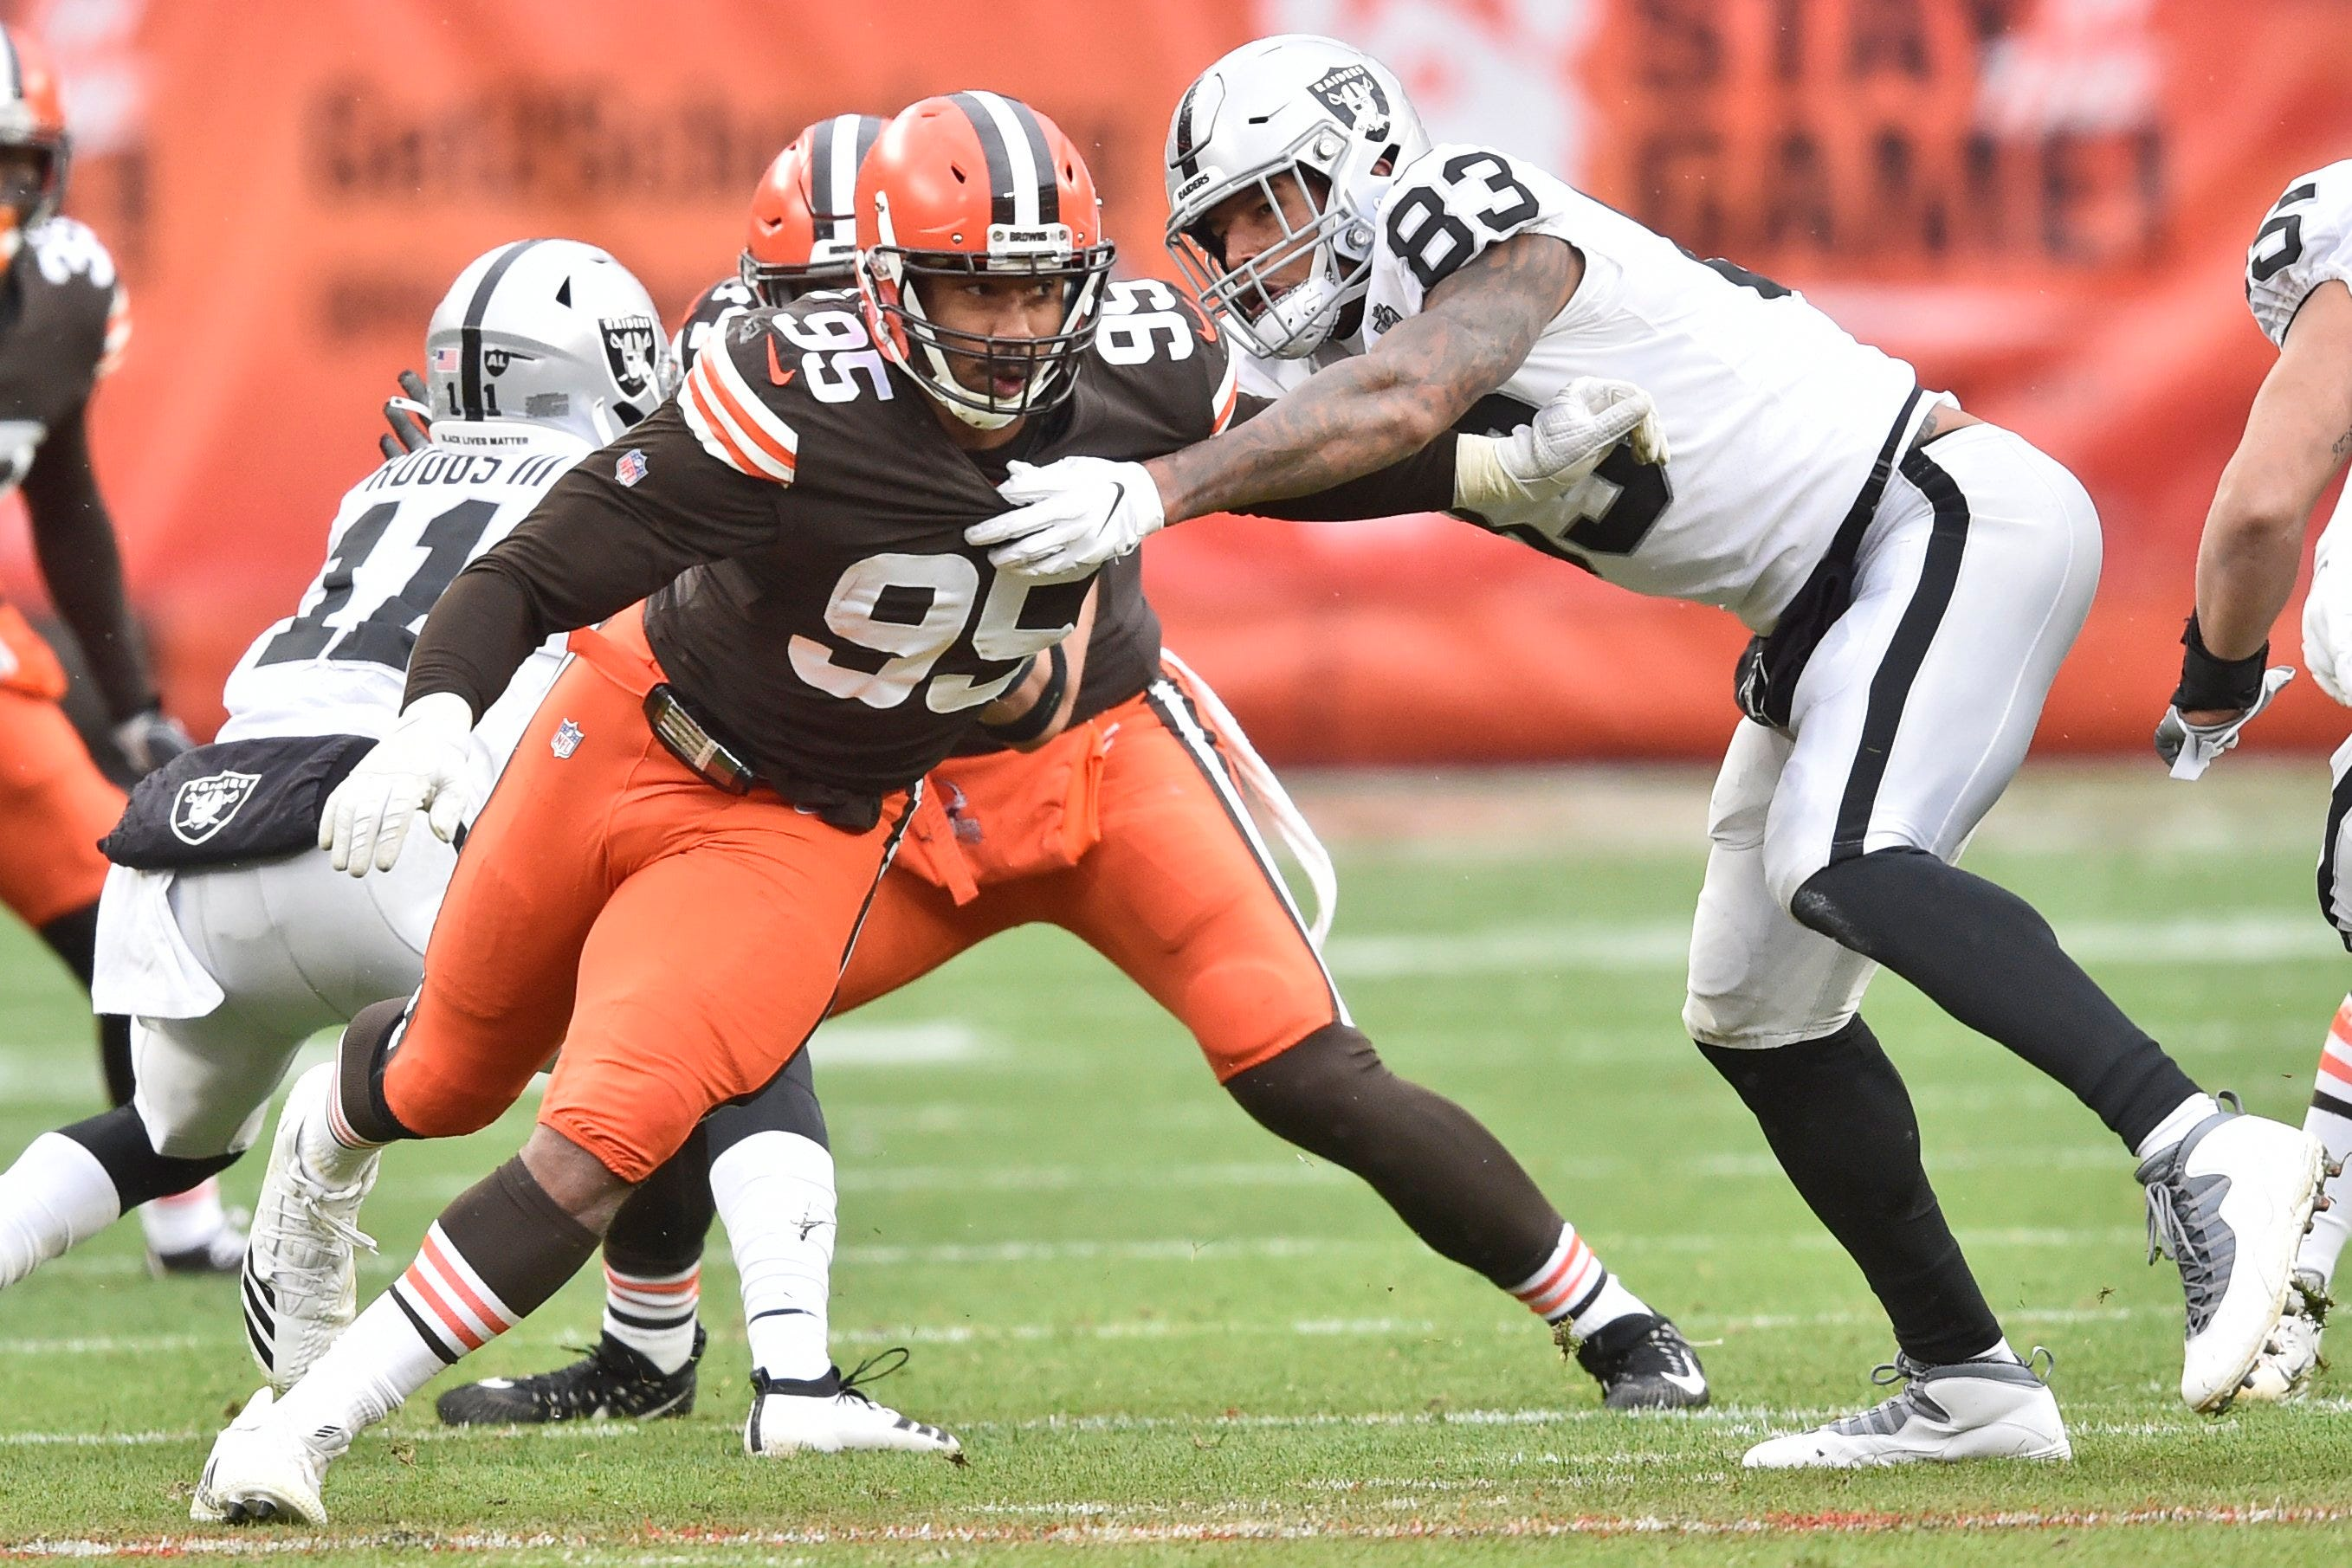 Cleveland Browns defensive end Myles Garrett tests positive for COVID-19